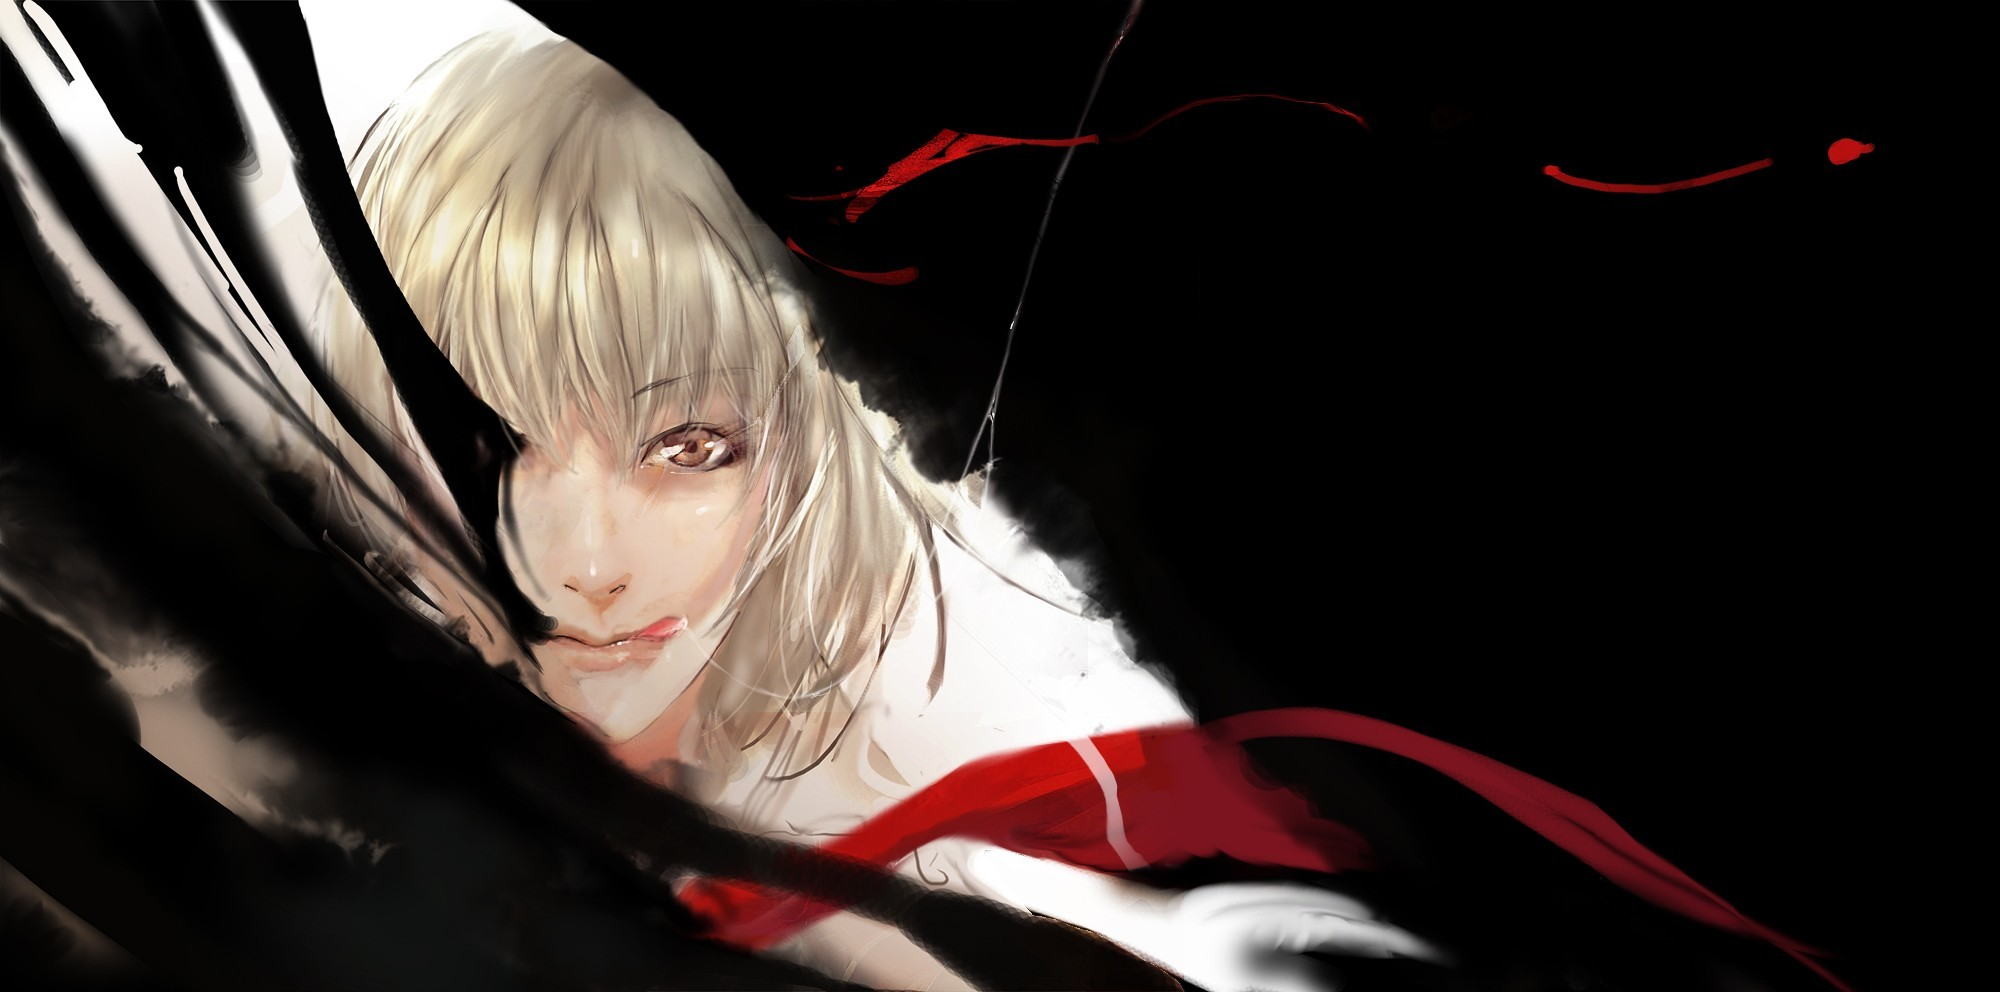 blondes video games touhou